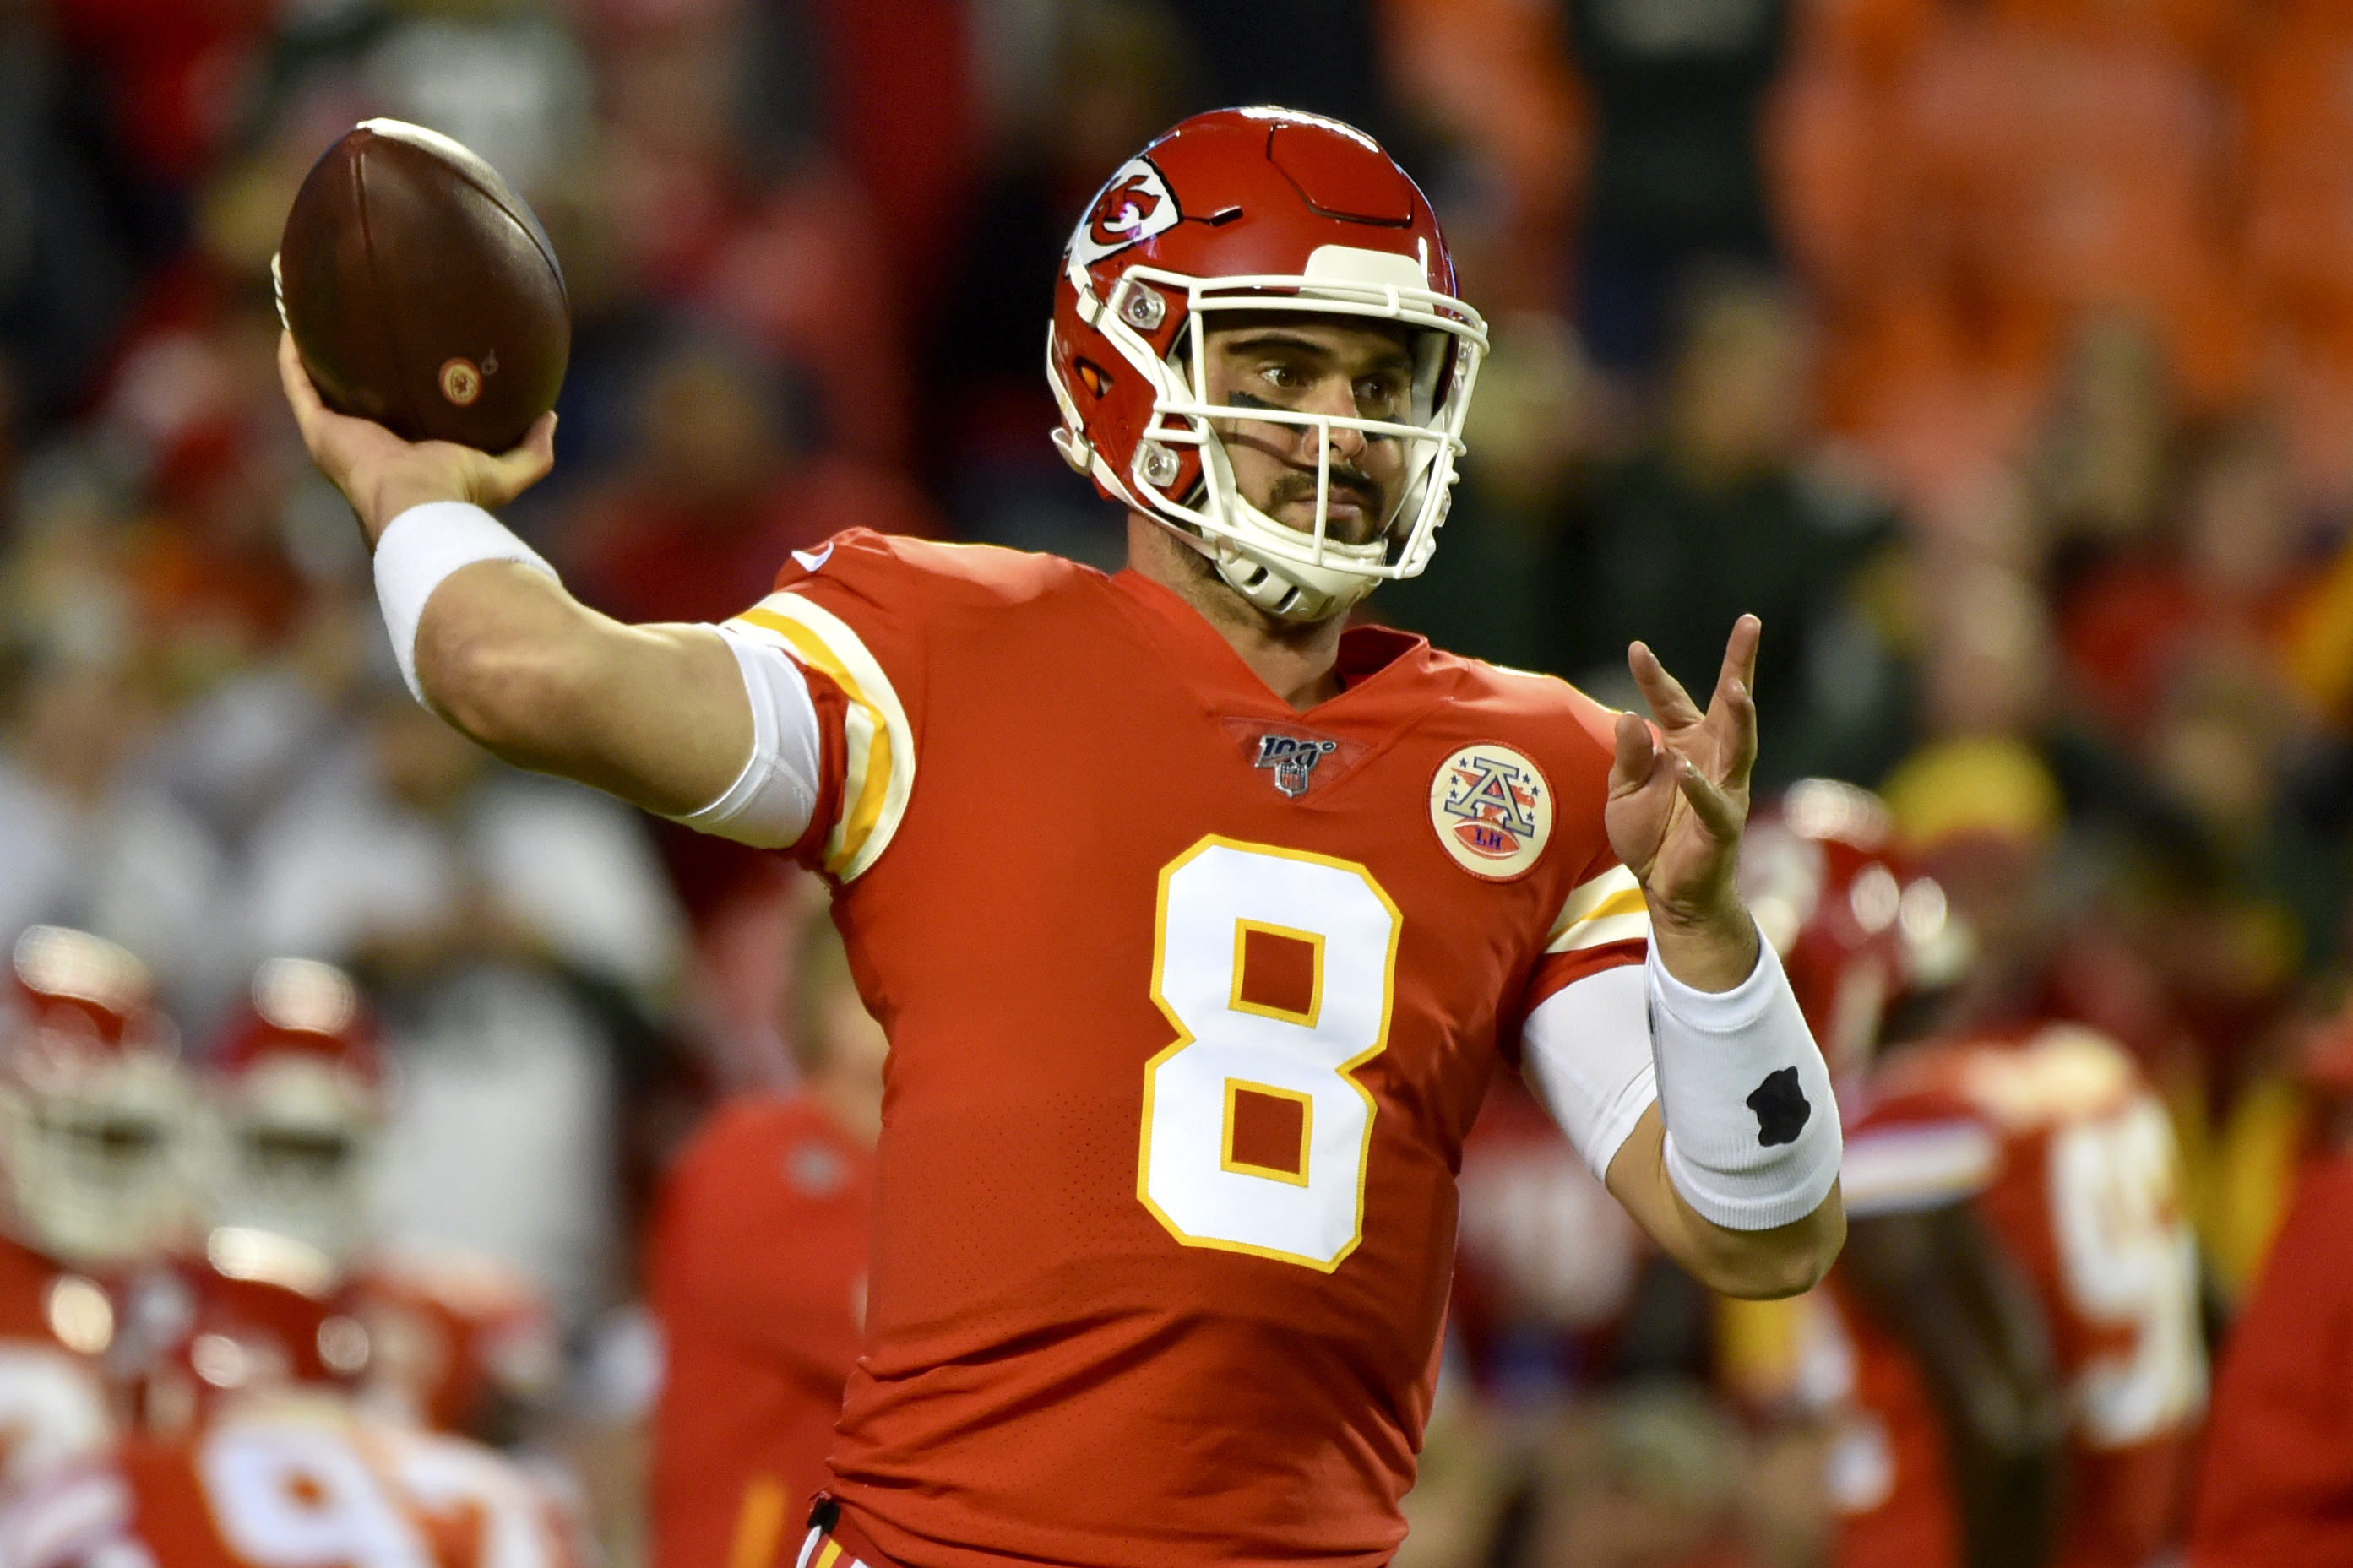 Moore gives Chiefs chance in showdown with Packers